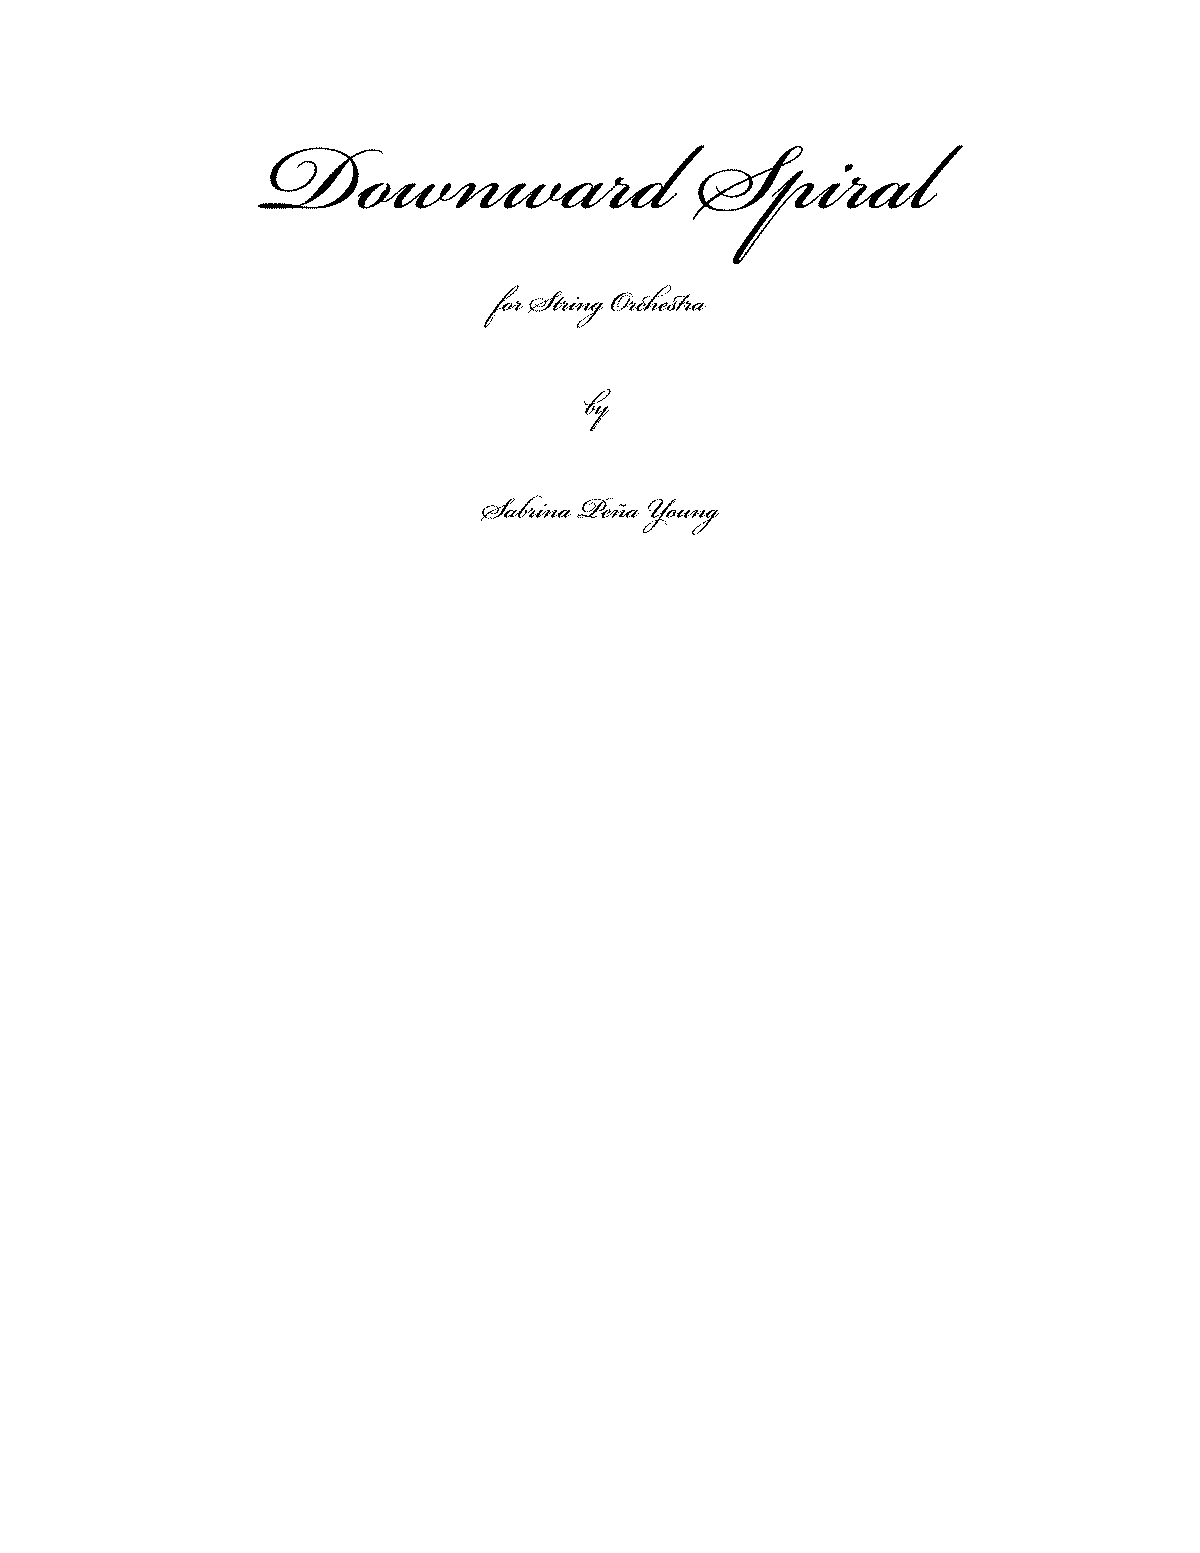 PMLP703469-Downward spiral all.pdf